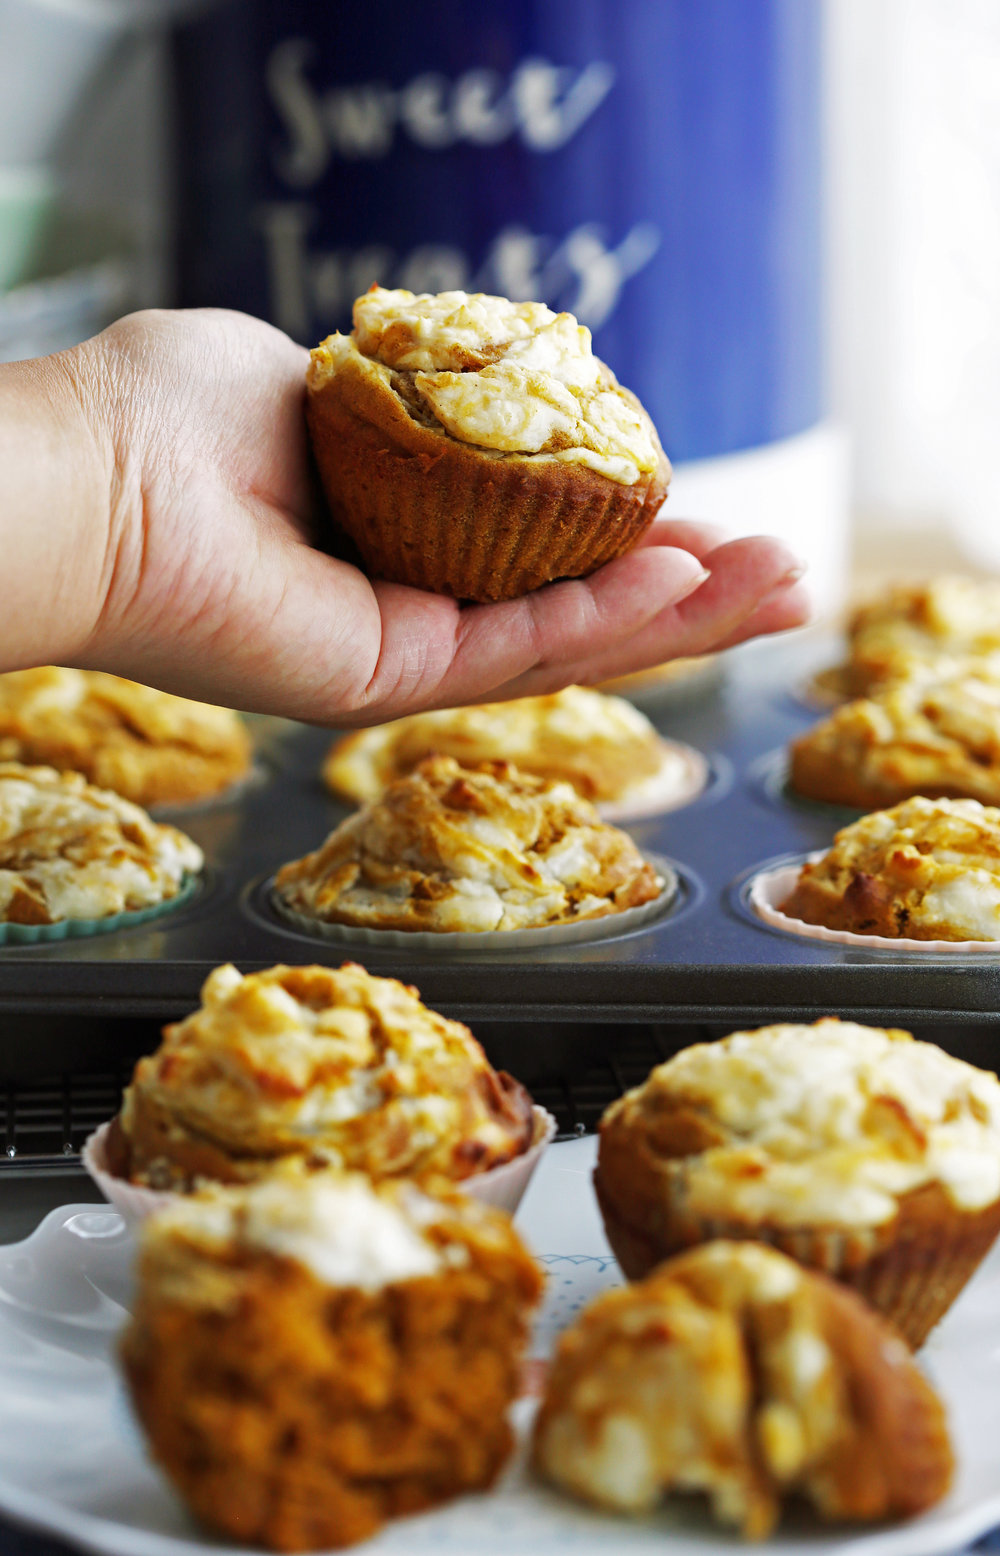 A pumpkin cream cheese muffin held in the palm of a hand with more muffins on a plate and muffin pan too.